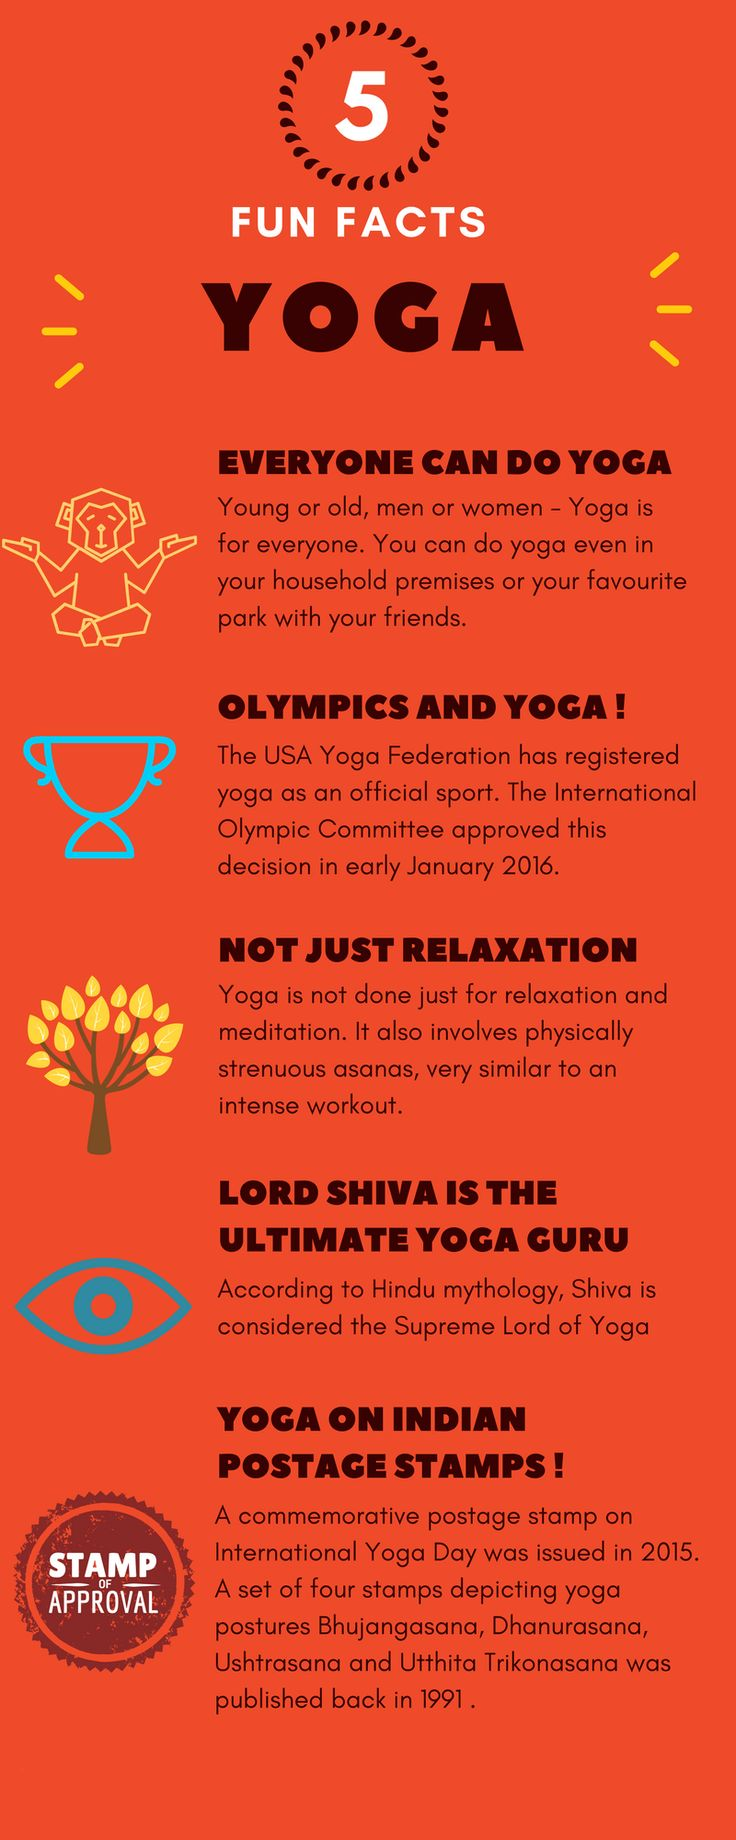 Let's know some fun facts about #yoga and it's benefits.